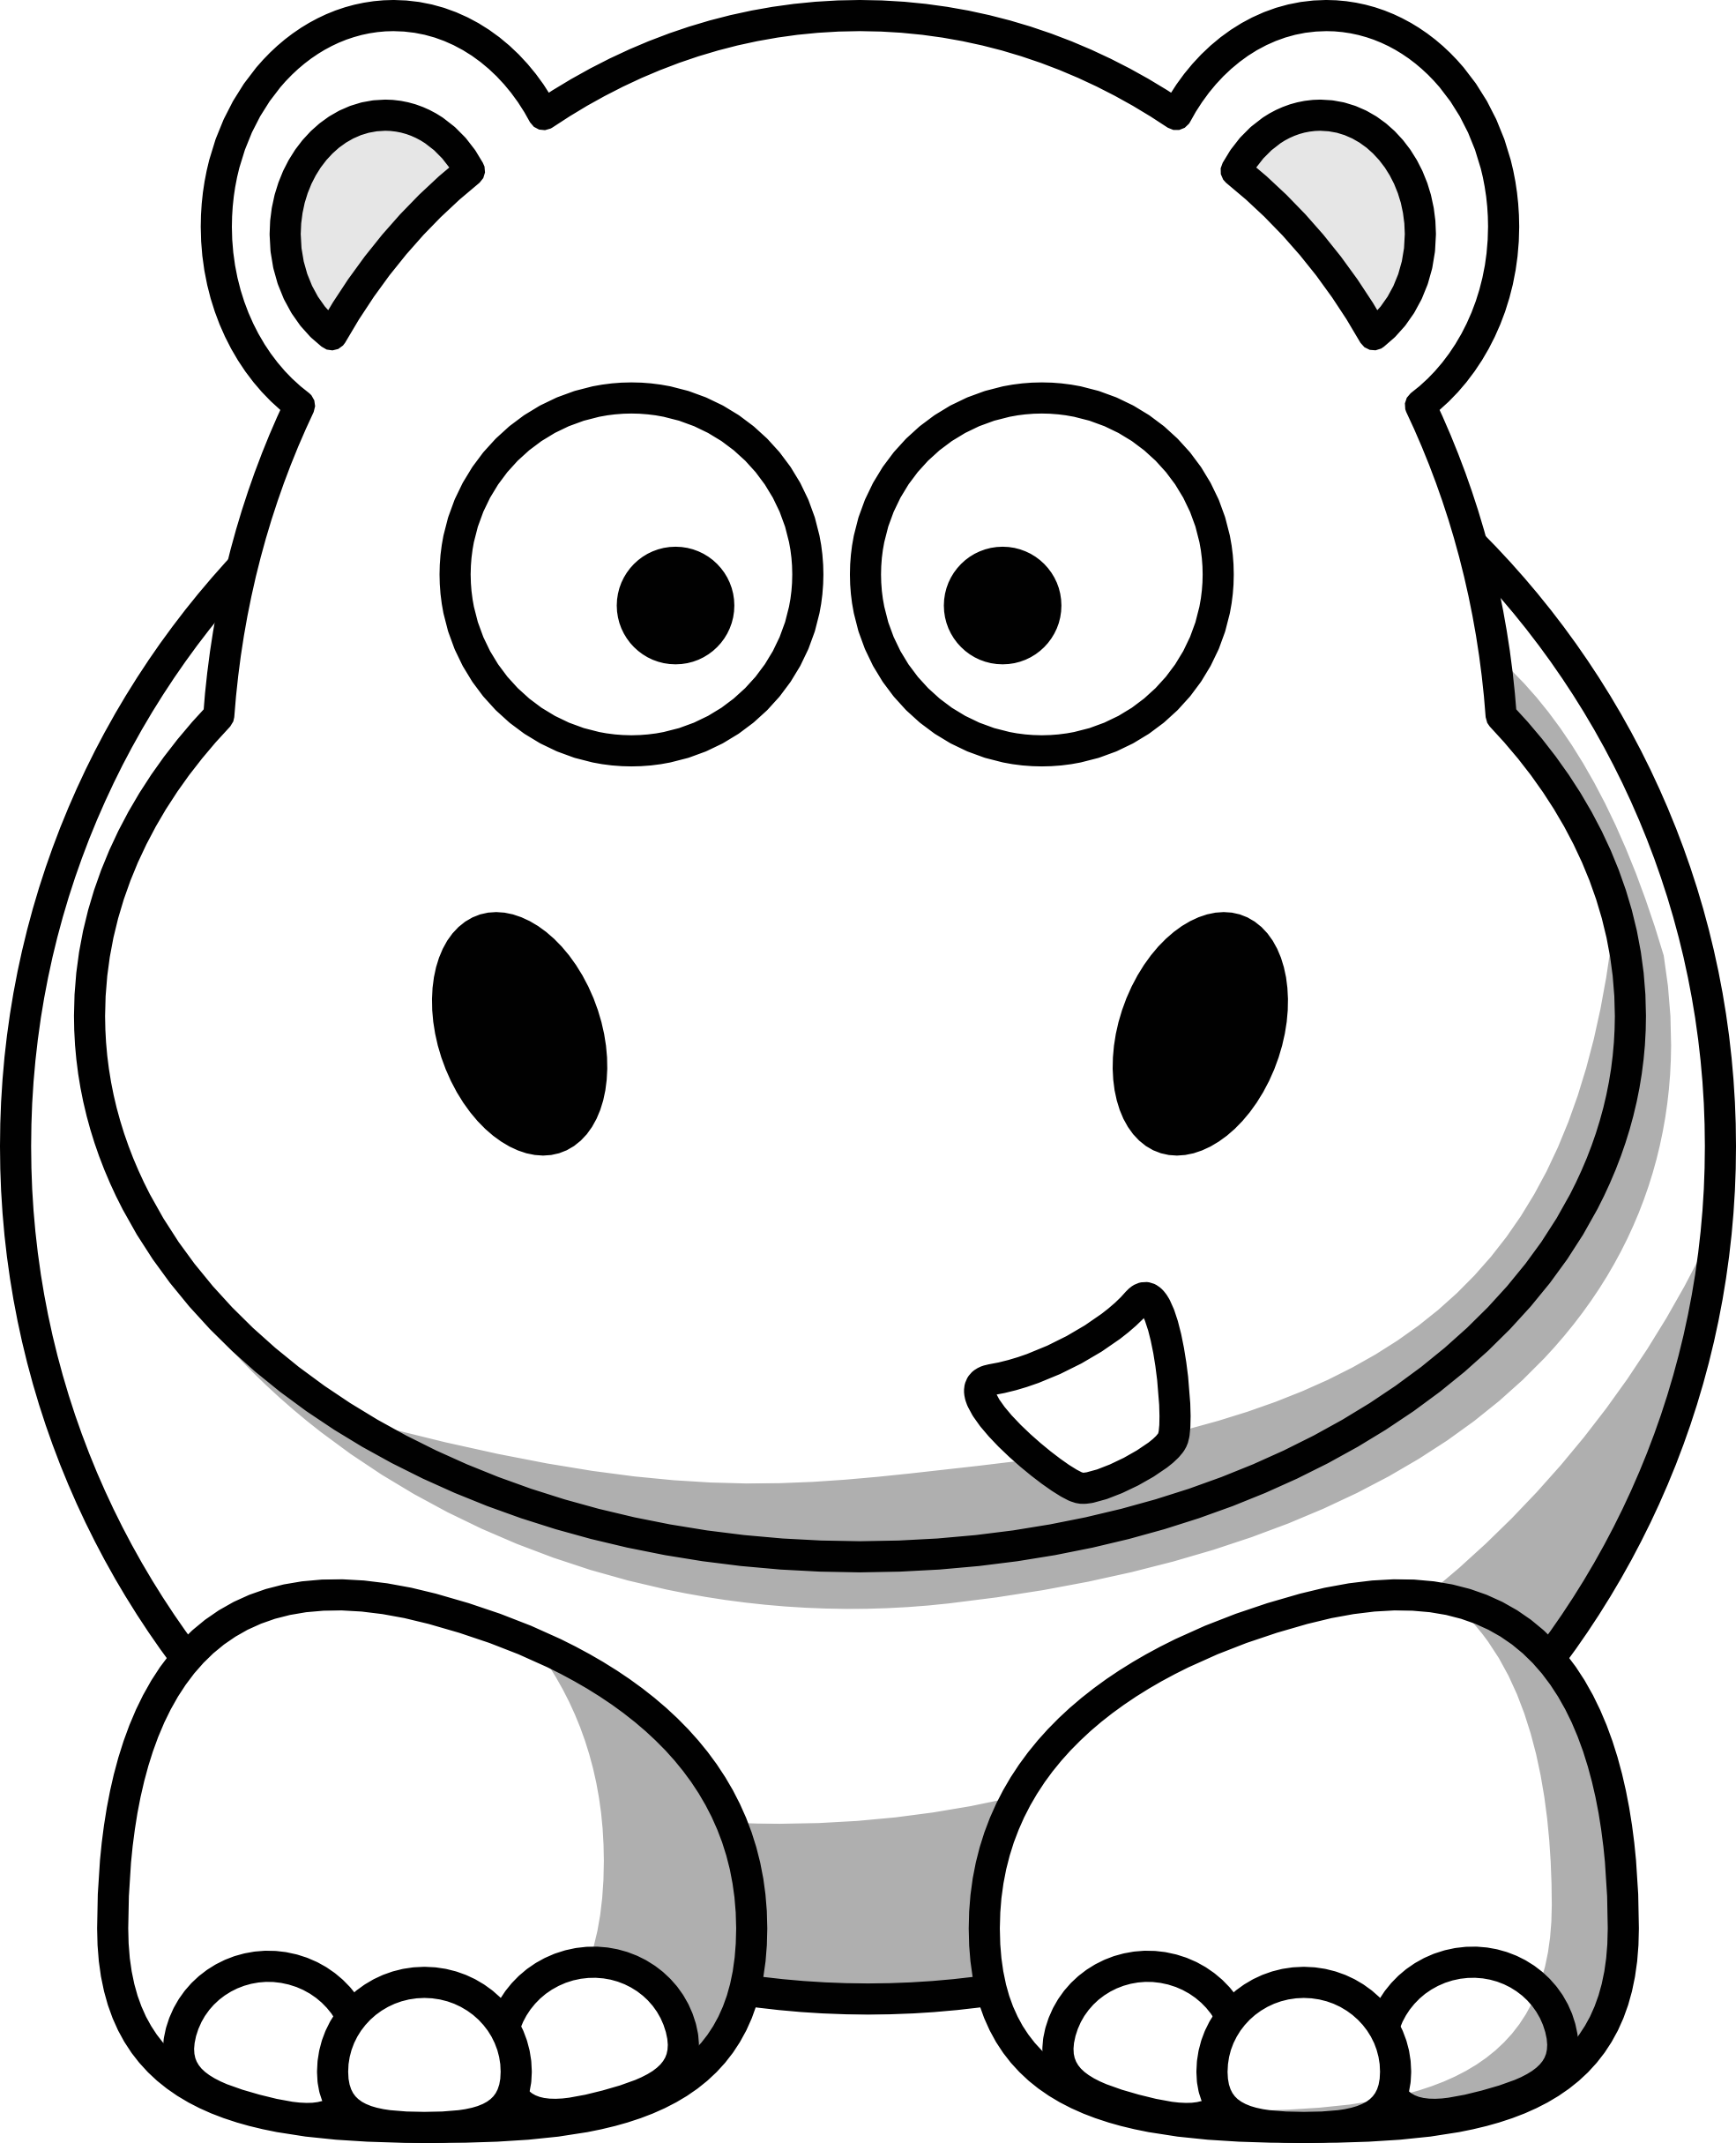 Ekg svg cartoon. Simple hippo drawing at